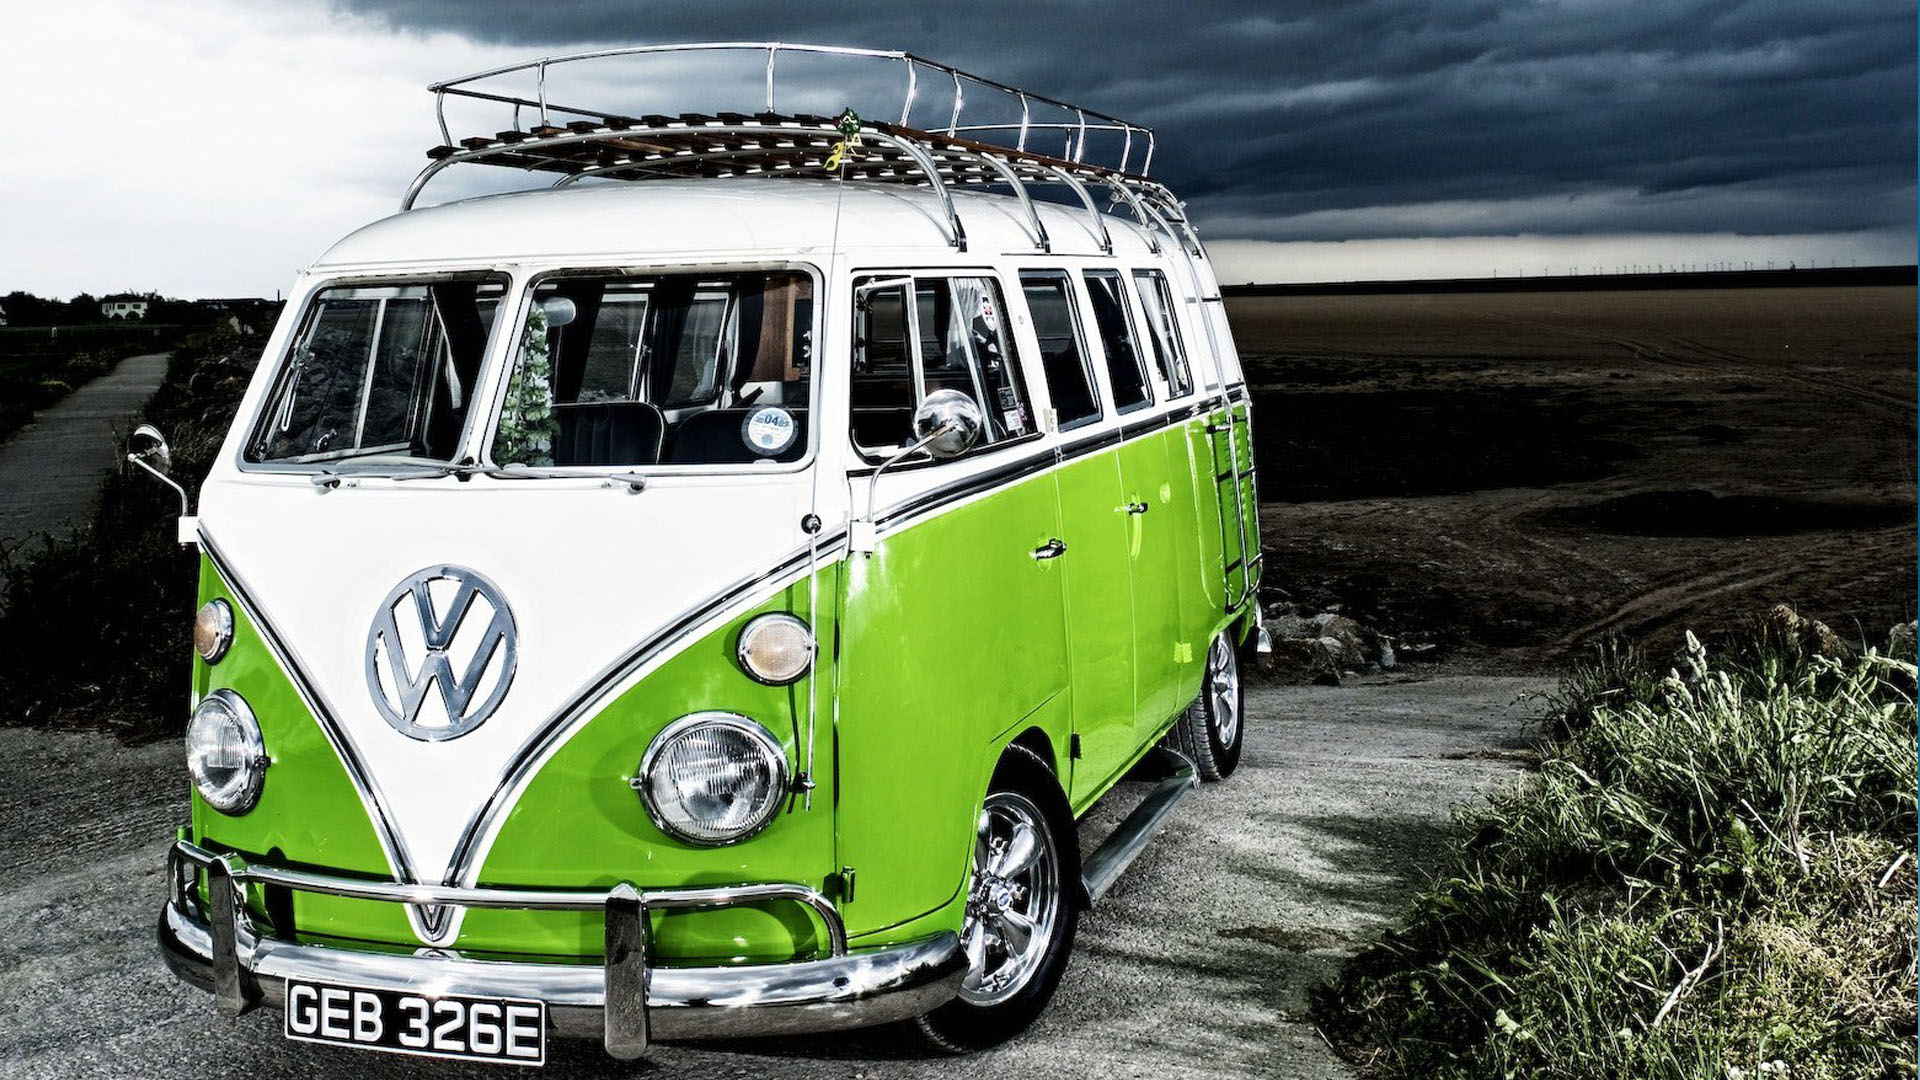 78+ Vw Bus Wallpaper on WallpaperSafari